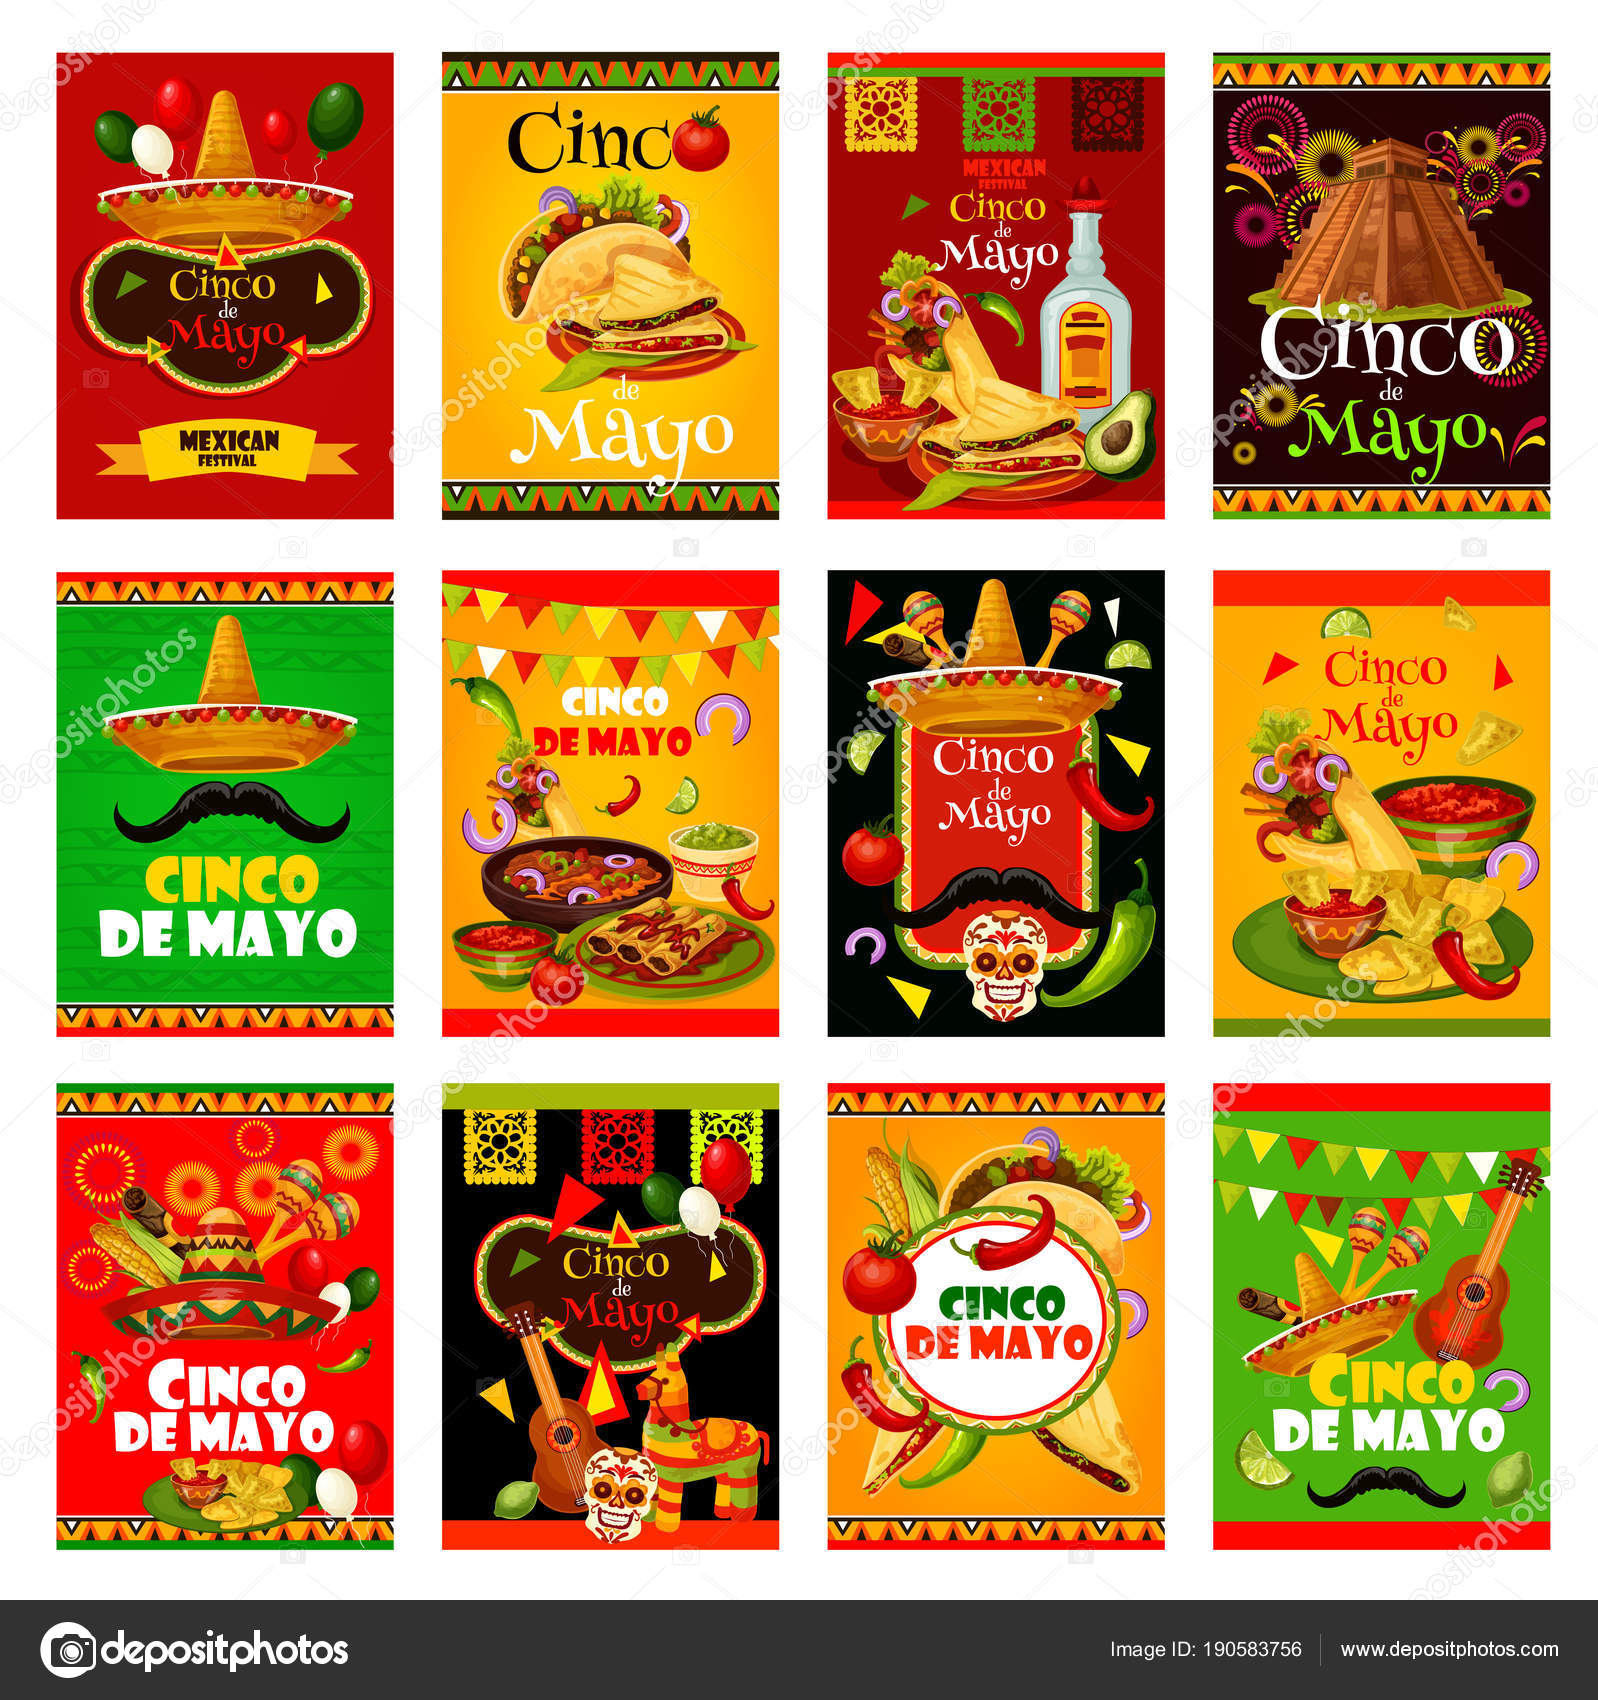 Cinco de mayo greeting card for mexican festival stock vector cinco de mayo greeting card set for mexican holiday design sombrero maracas and guitar fiesta party food and drink chili pepper jalapeno and tequila m4hsunfo